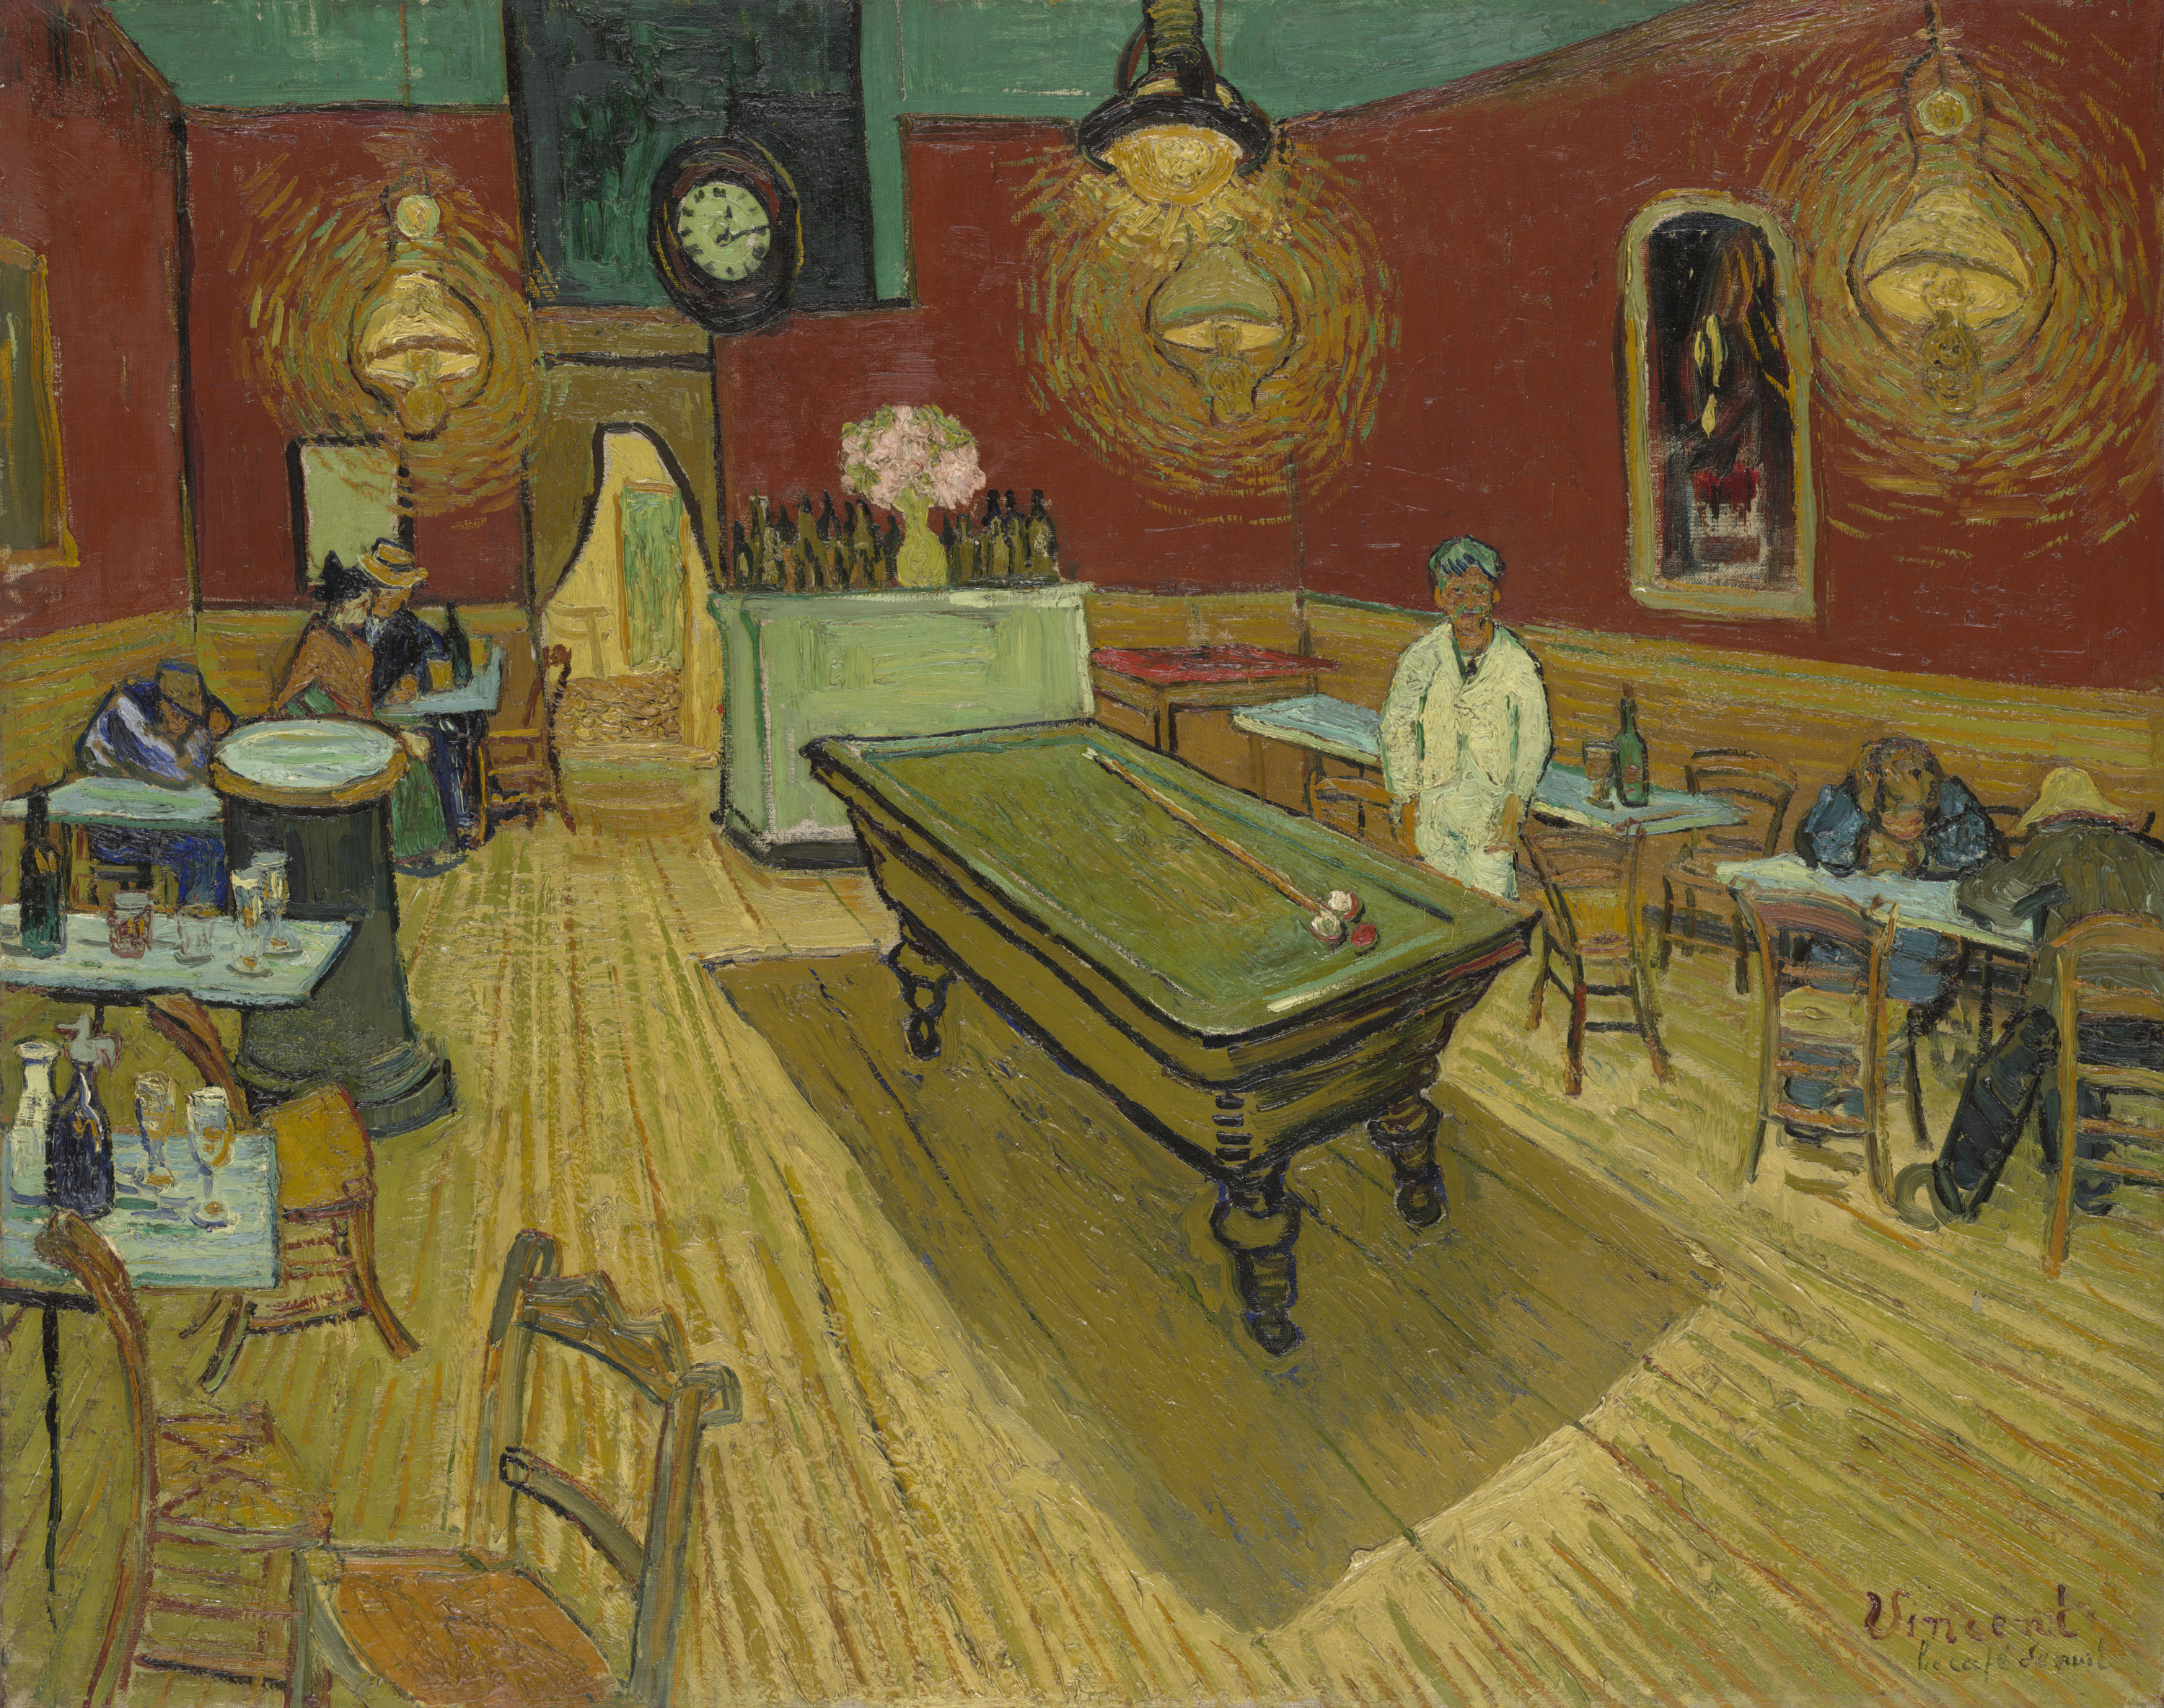 patrons are present at a sparsely attended venue with half full seating tables along the right and left walls, while the back wall has a taller piece of furniture with bottles atop it next to a doorway and in the centre of the room is a large piece of furniture that may be a billiards table. Bright lanterns hang from the ceiling and one person is standing.